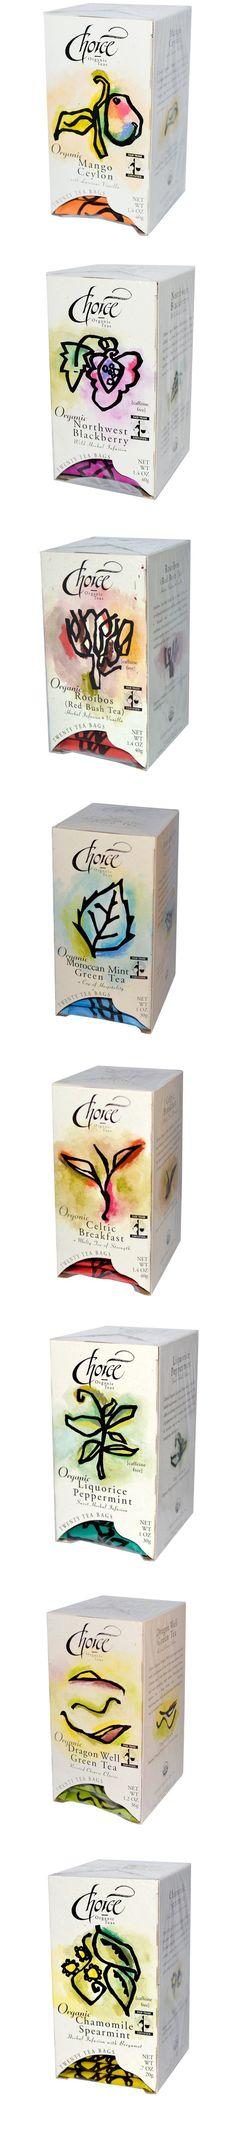 Choice Organic Tea | www.choiceorganicteas.com/